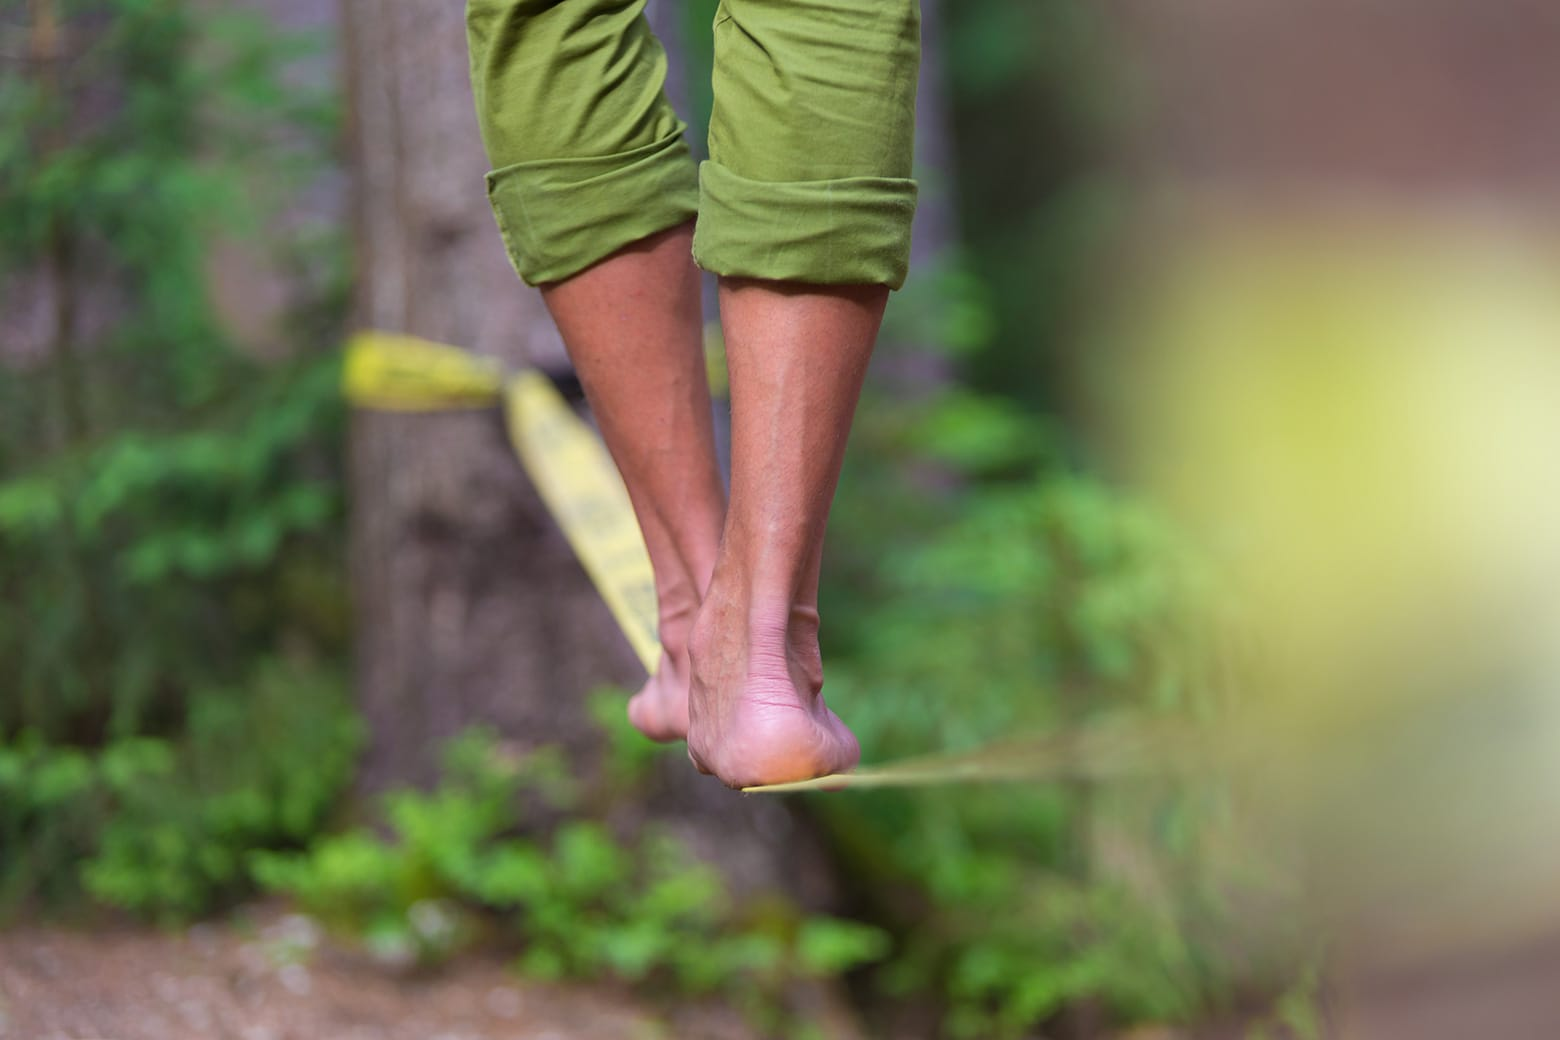 Going barefoot - Mouvement a Pieds nus - Barfusstraining